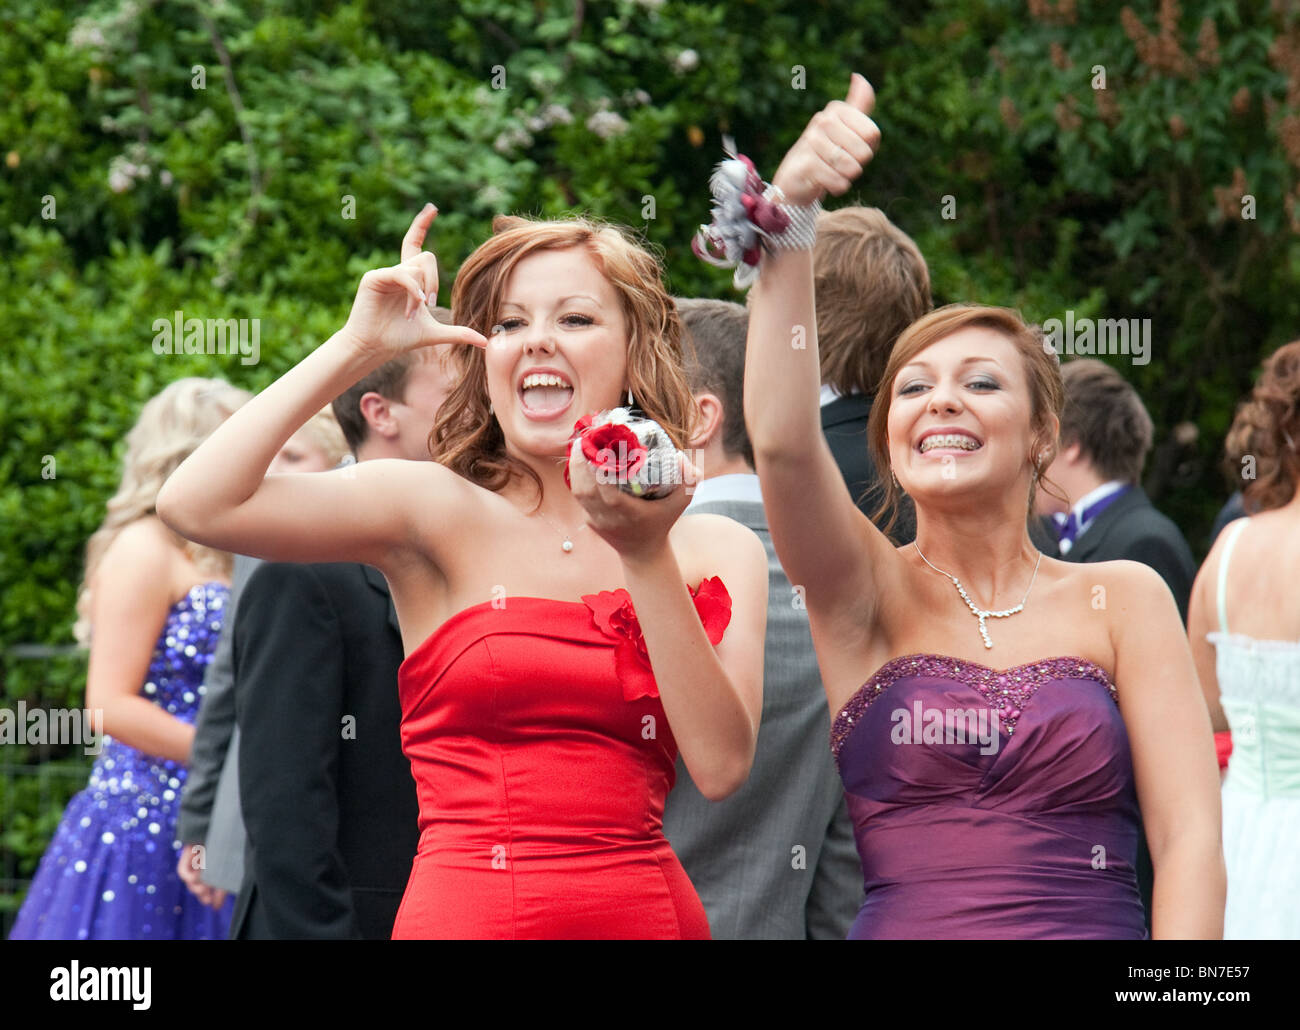 teenage-girls-dressed-up-for-their-secondary-school-prom-having-fun-BN7E57.jpg